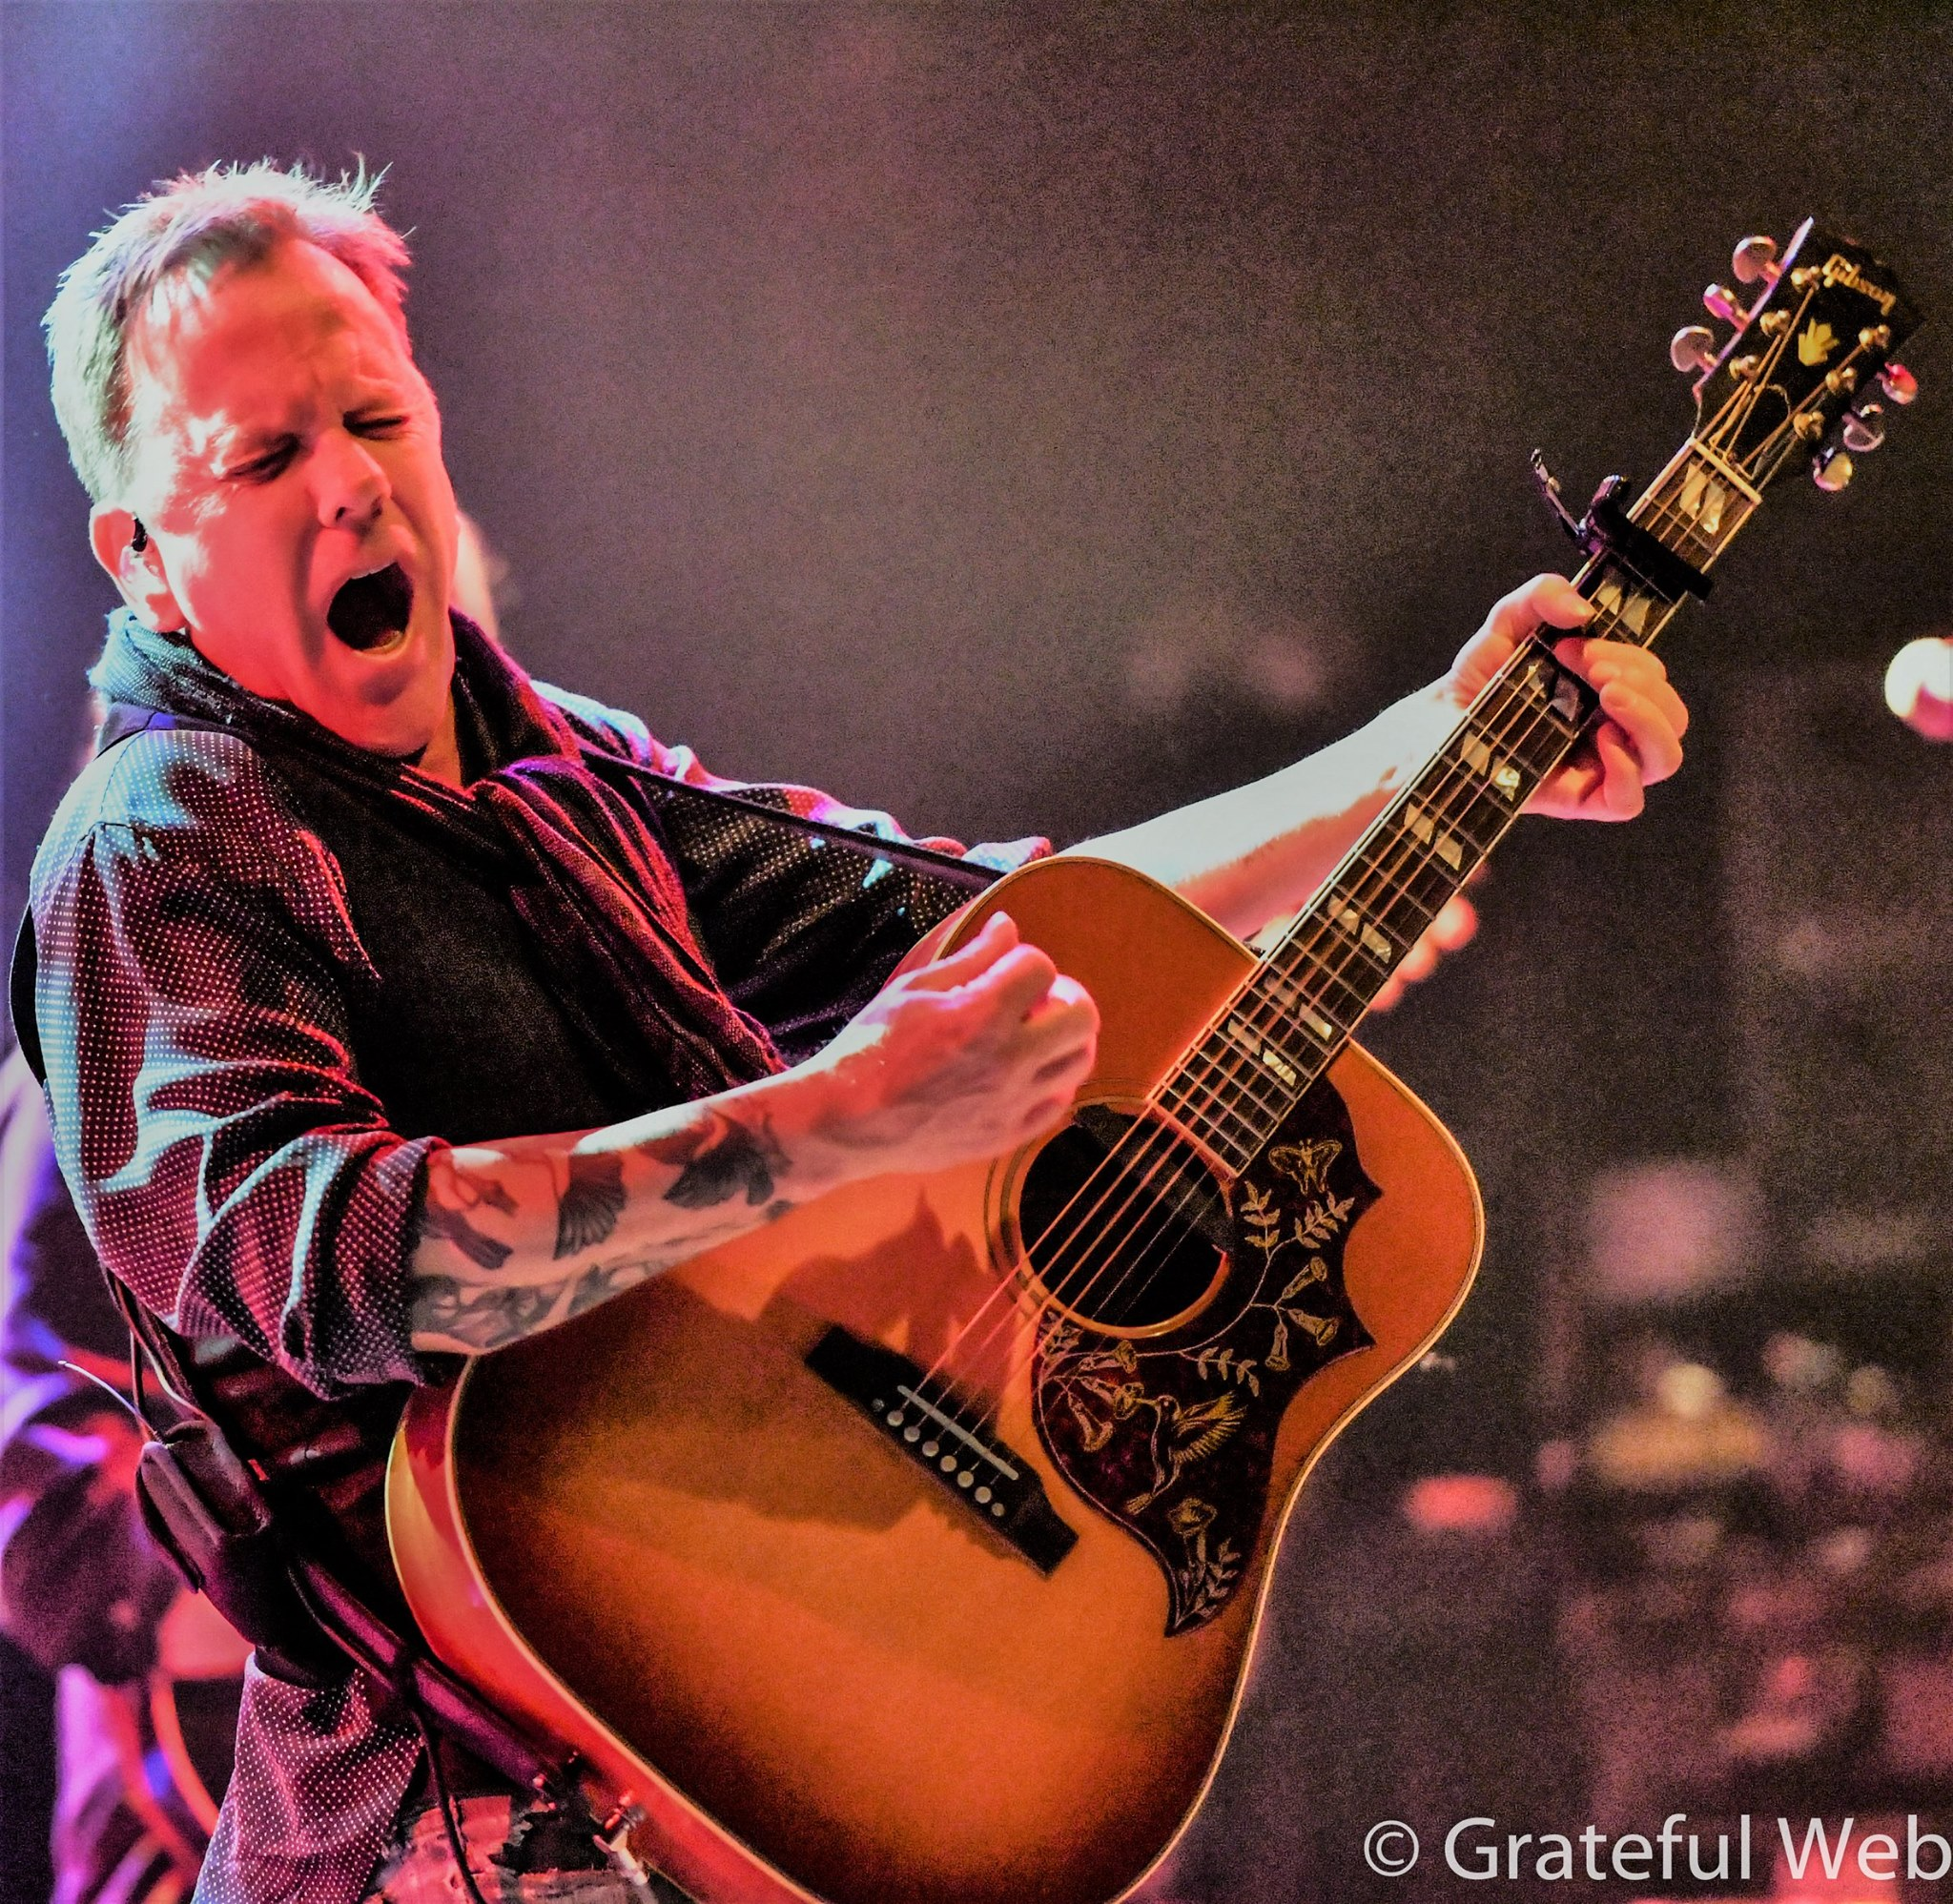 Kiefer Sutherland Readies New Music with New Management Partnership